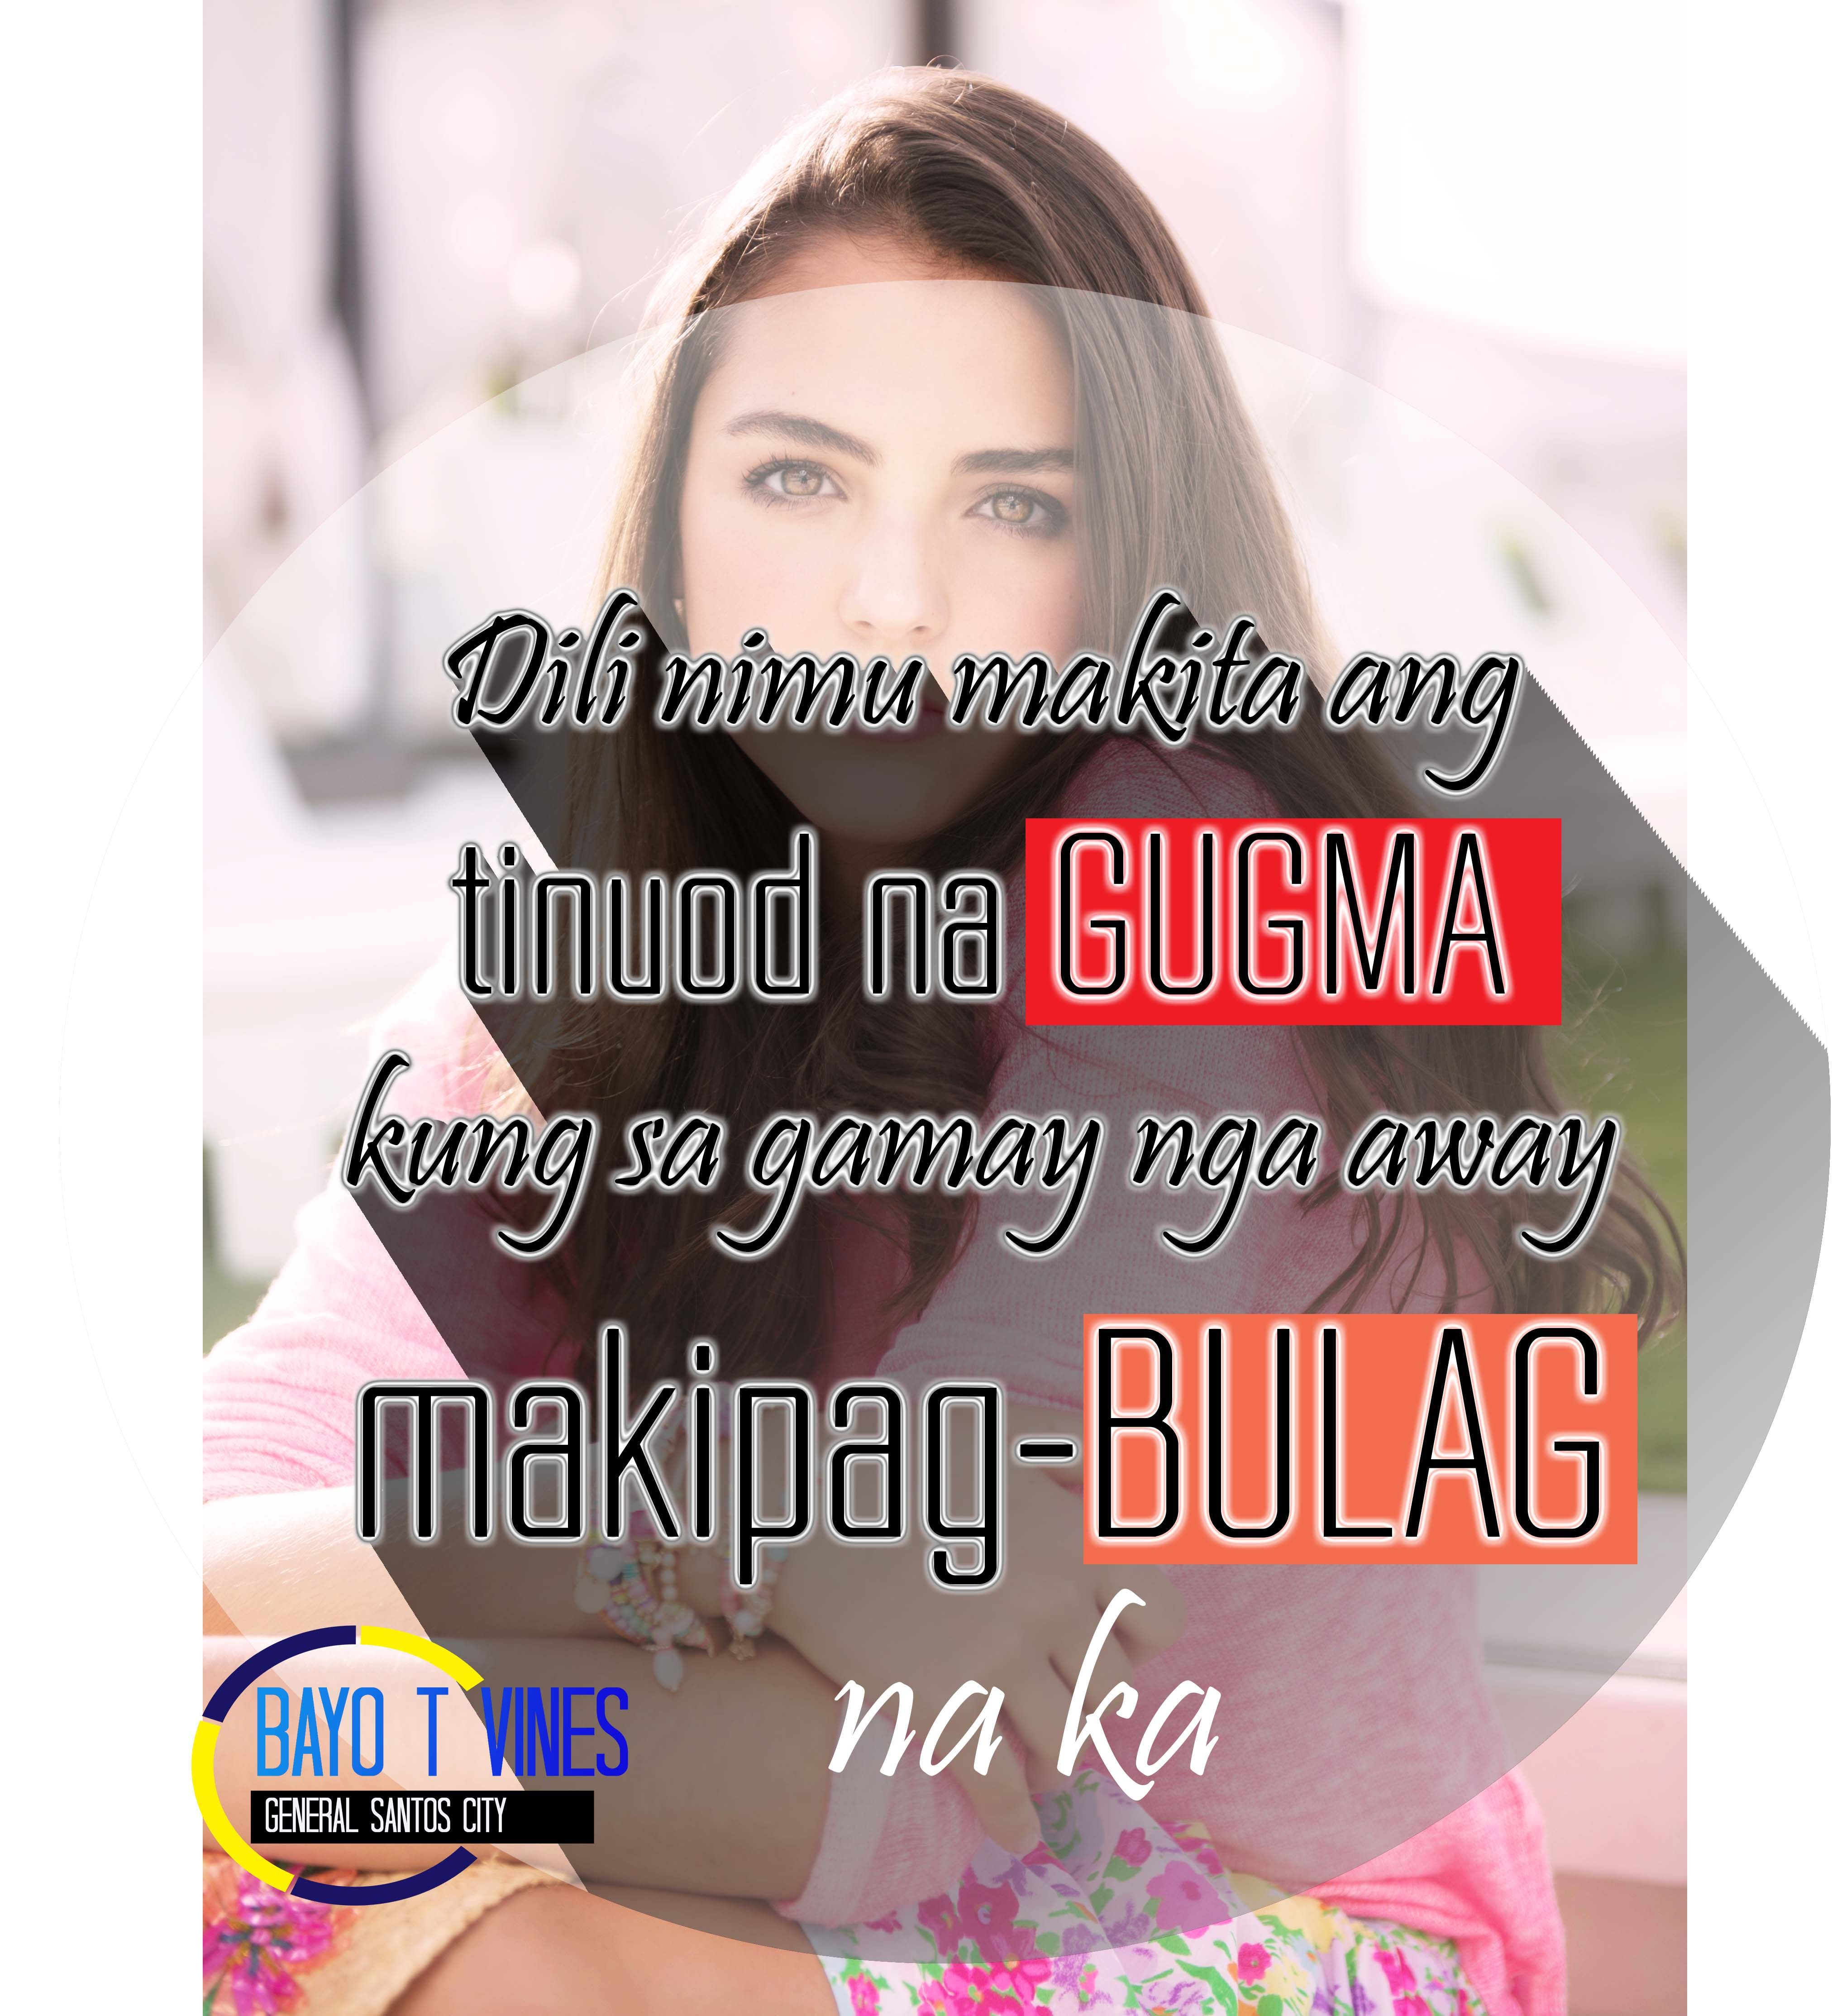 Bisaya Quotes by Bayo T Vines